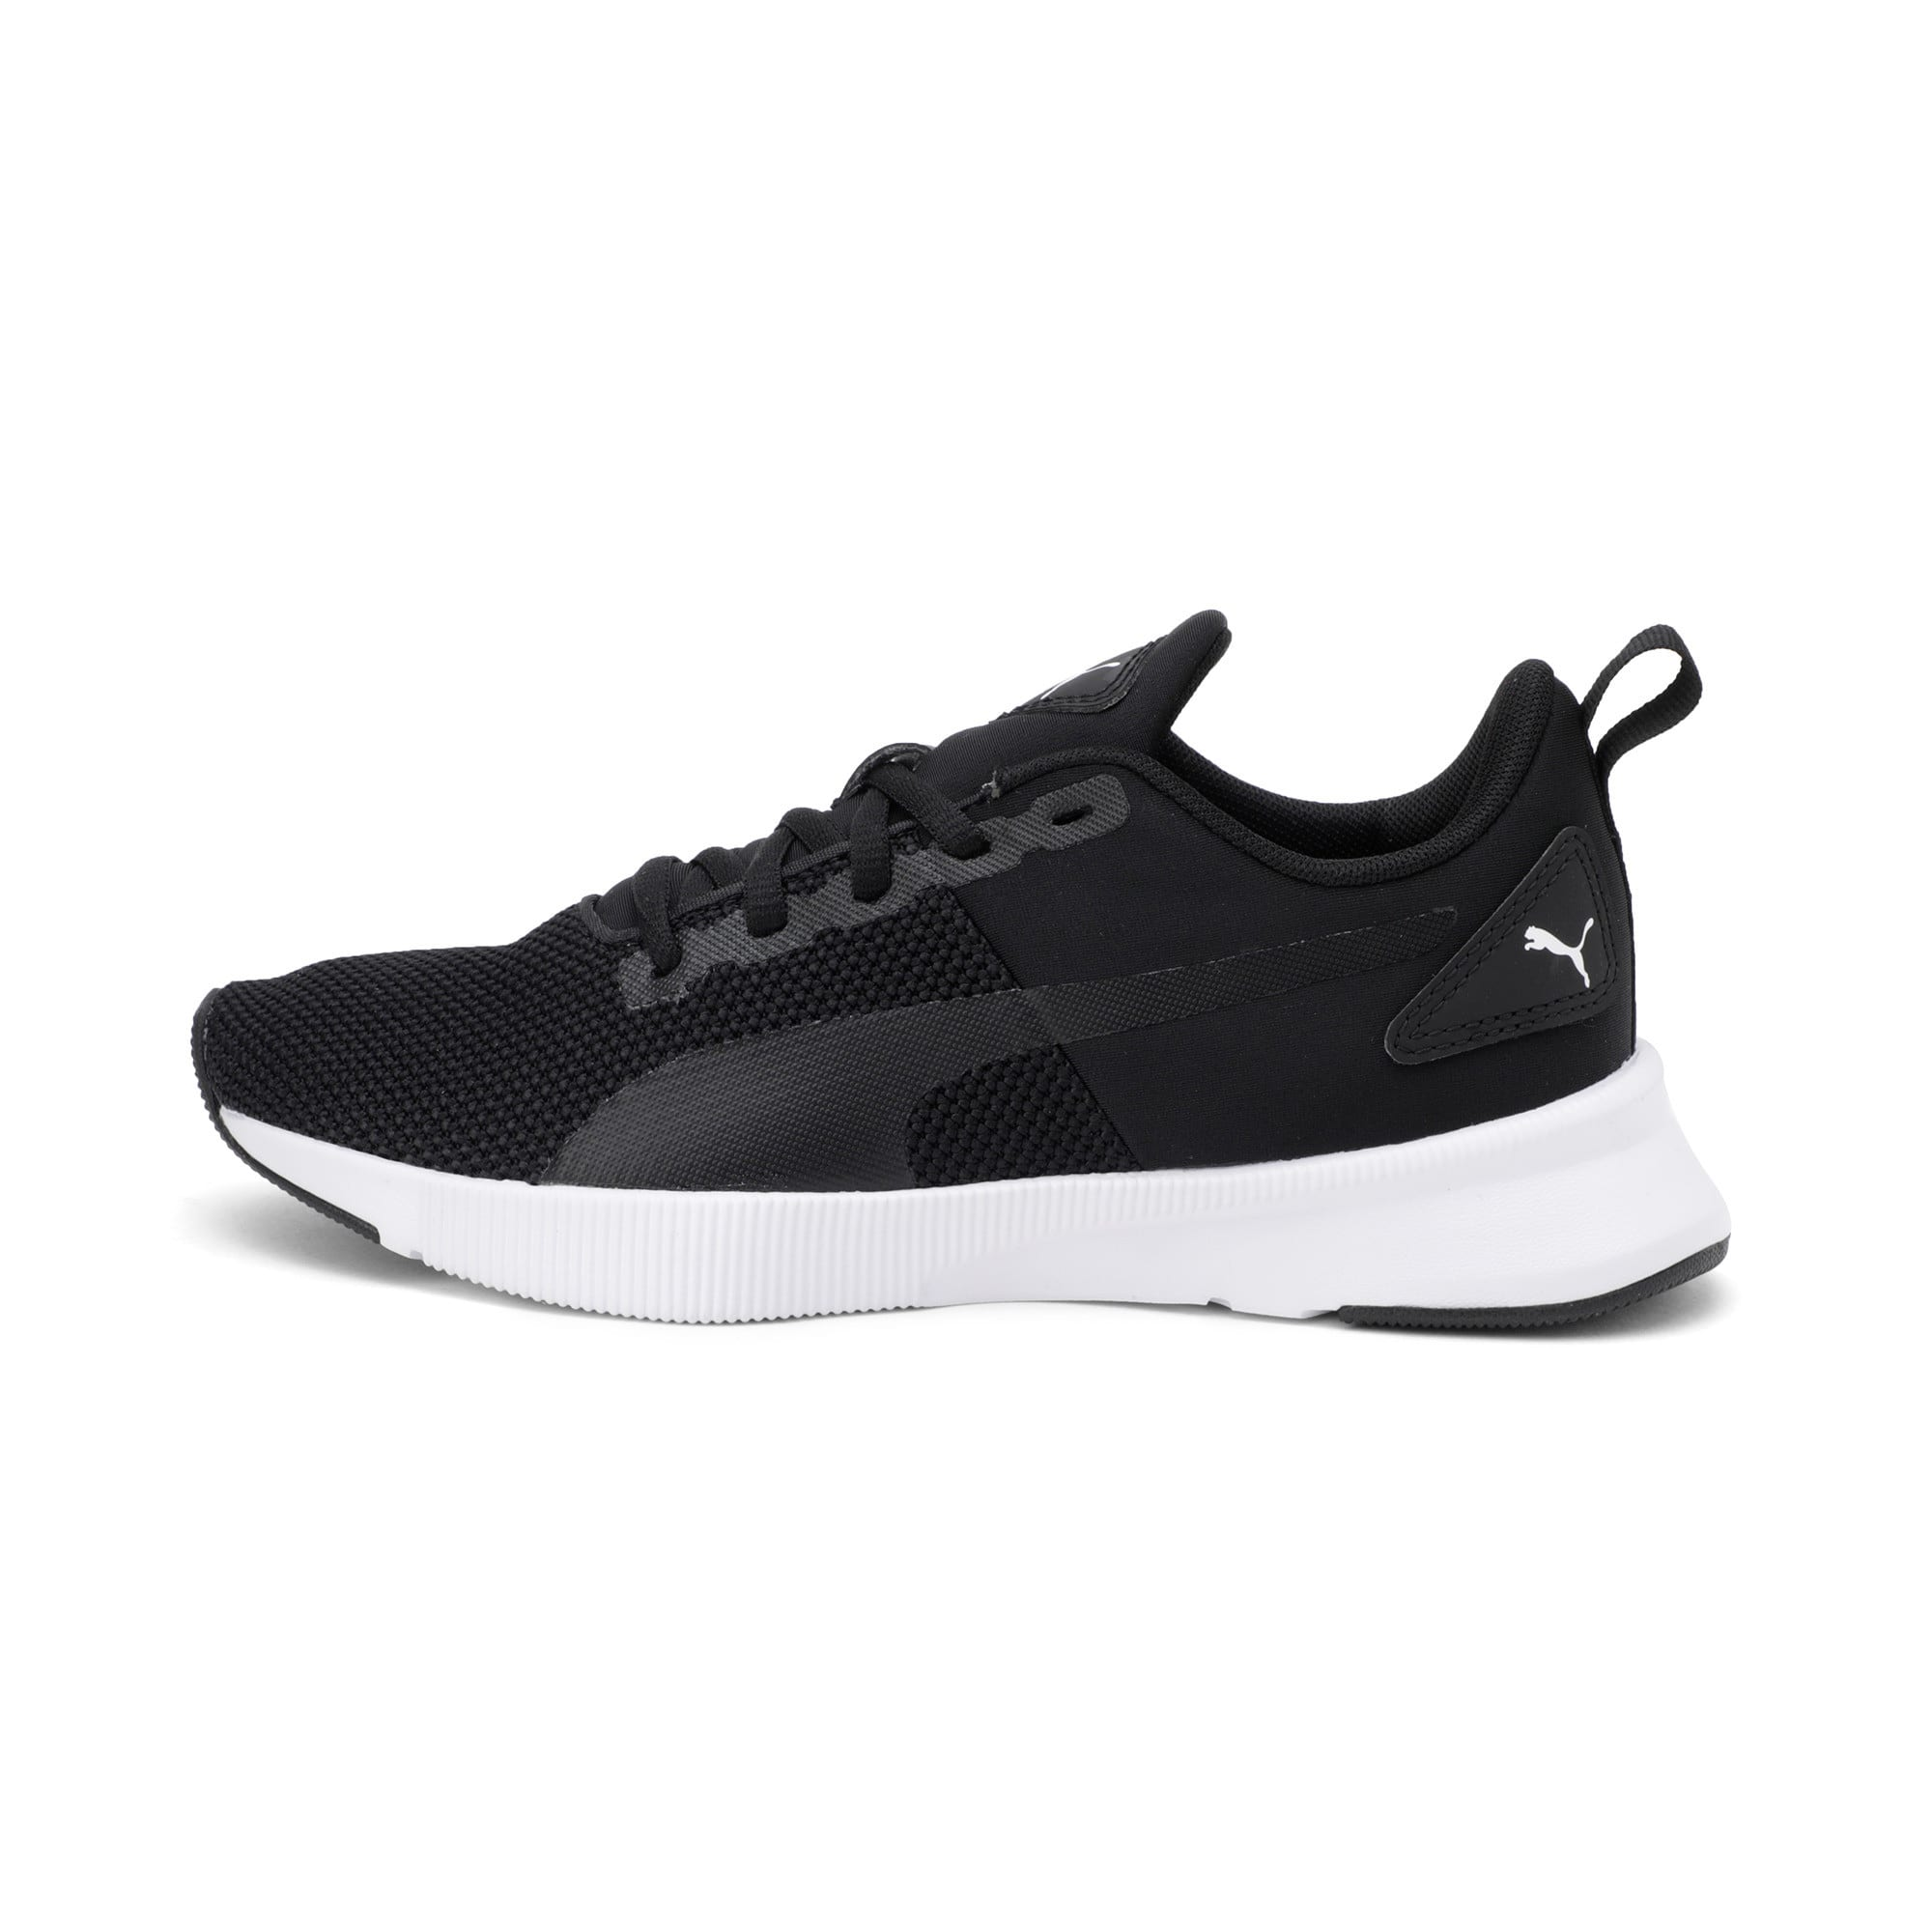 Thumbnail 1 of Flyer Runner Youth Trainers, Puma Black-Puma White, medium-IND